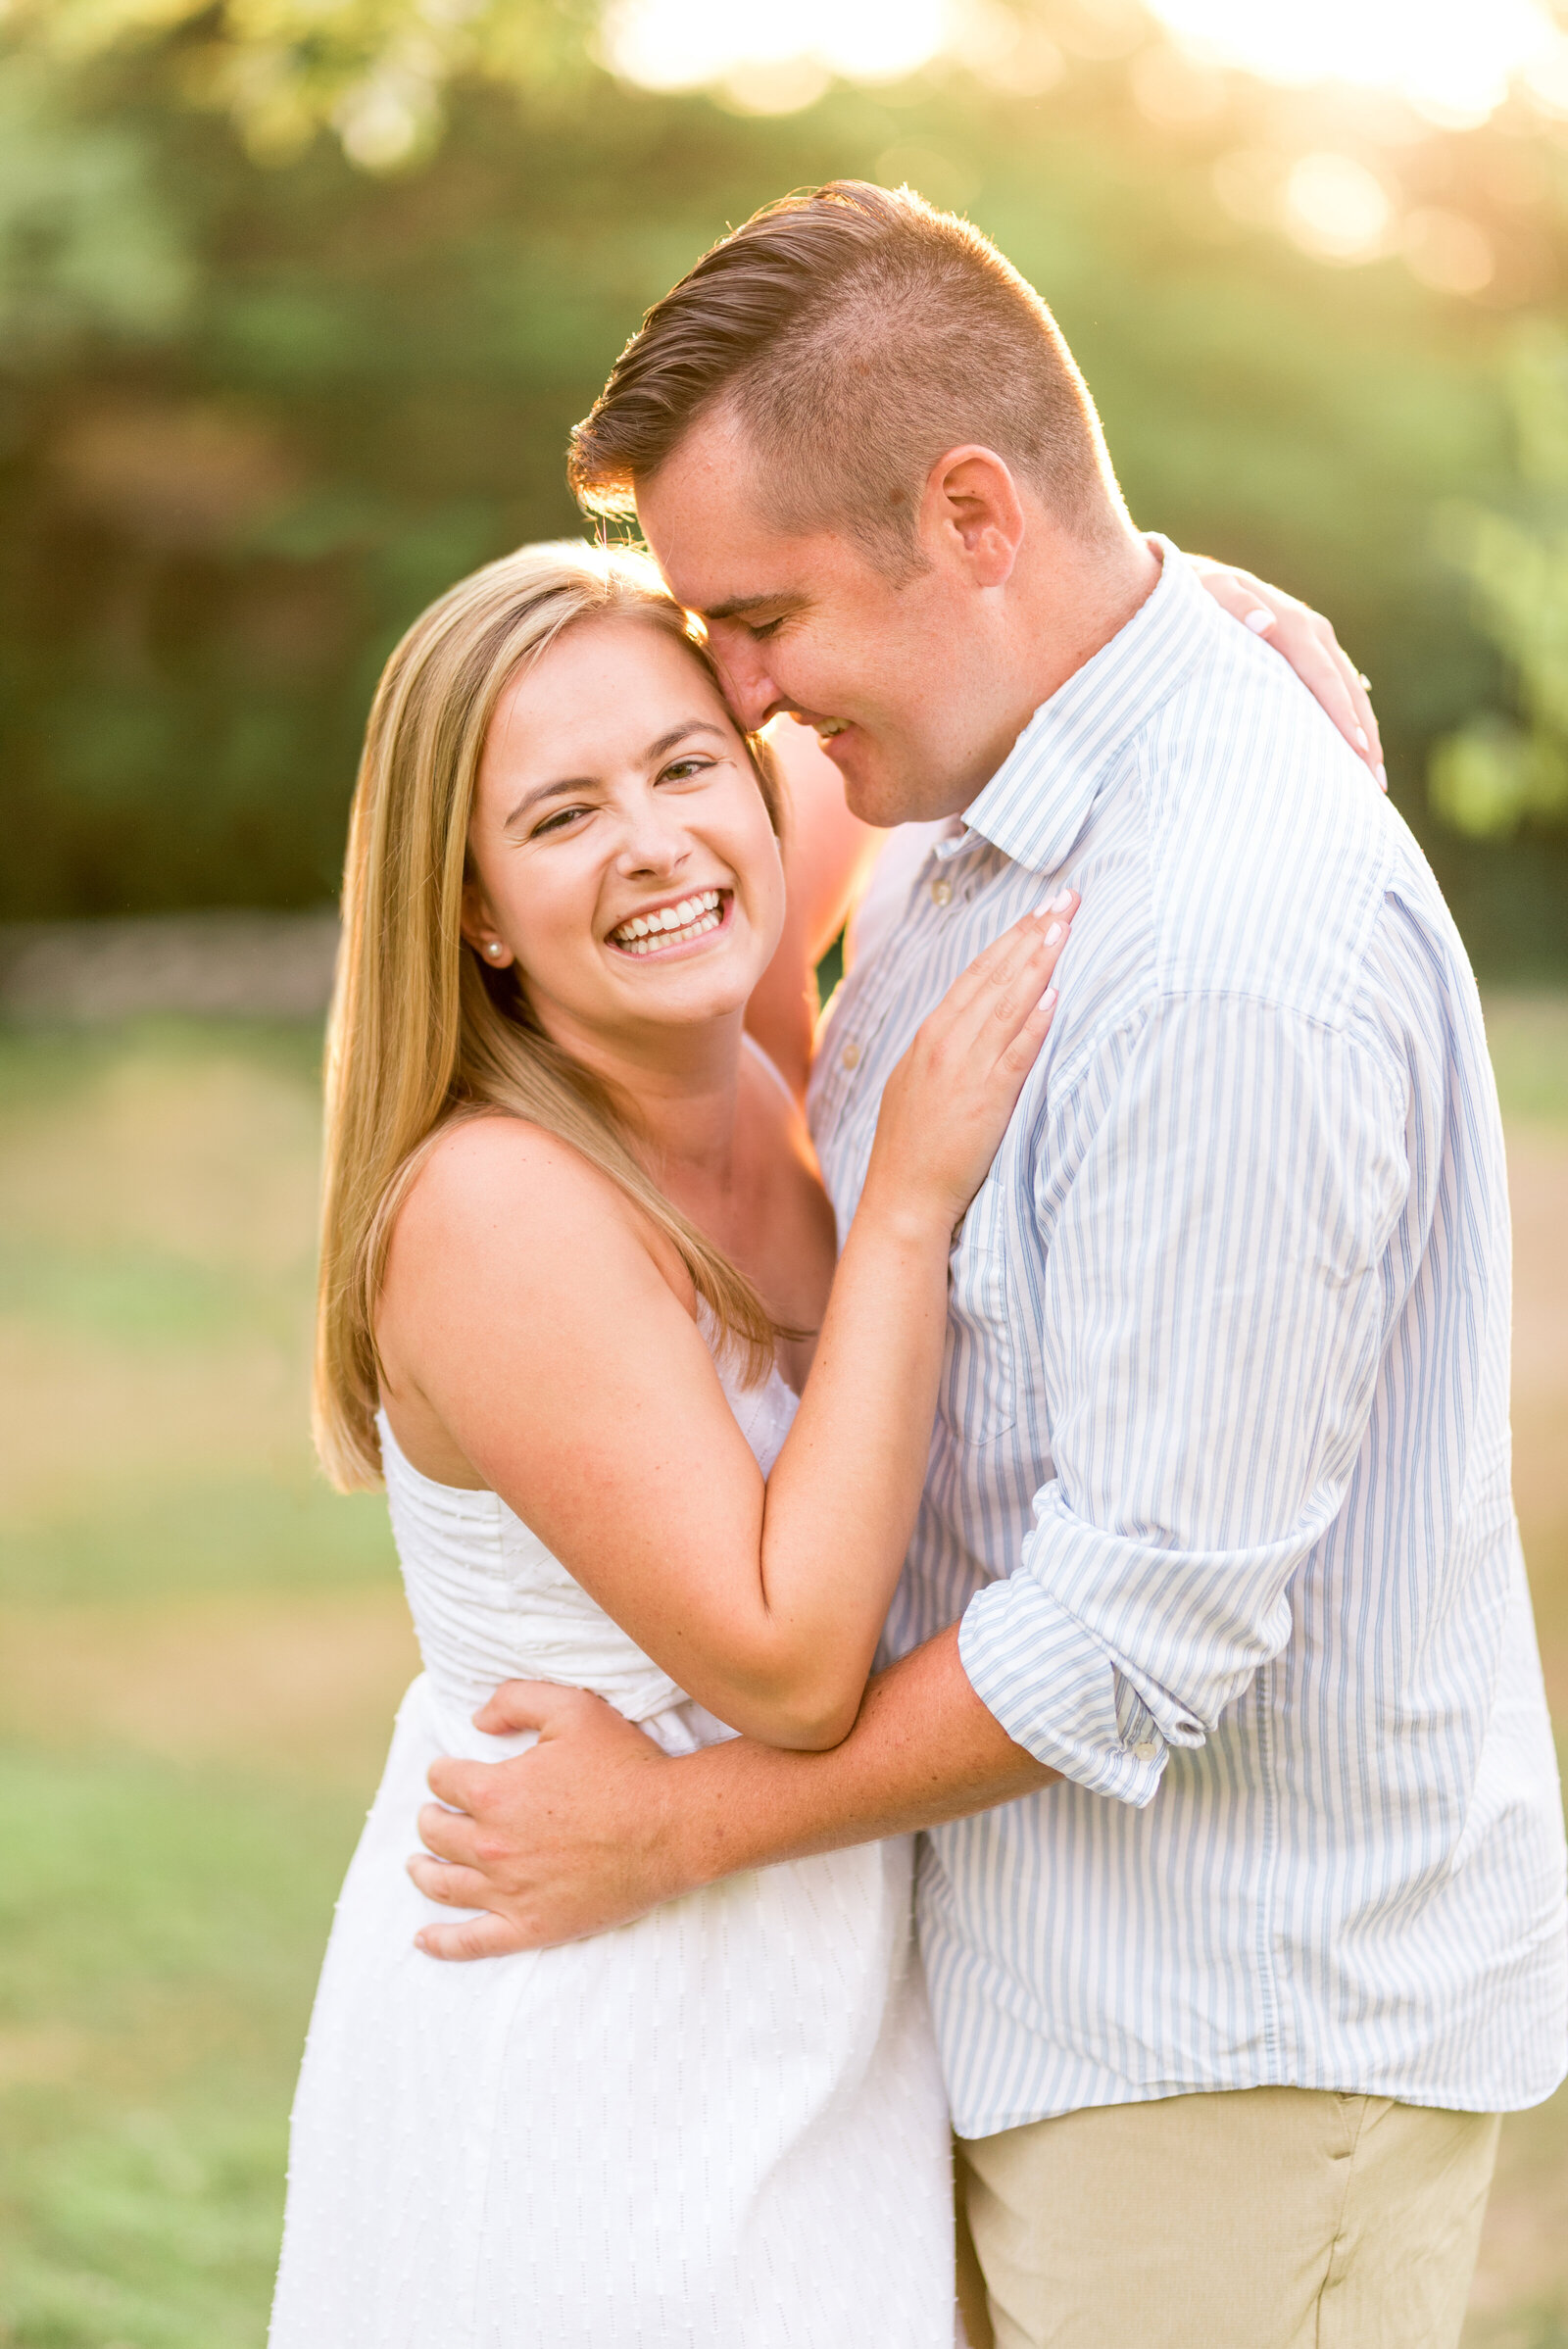 Giggly Engagement Couple